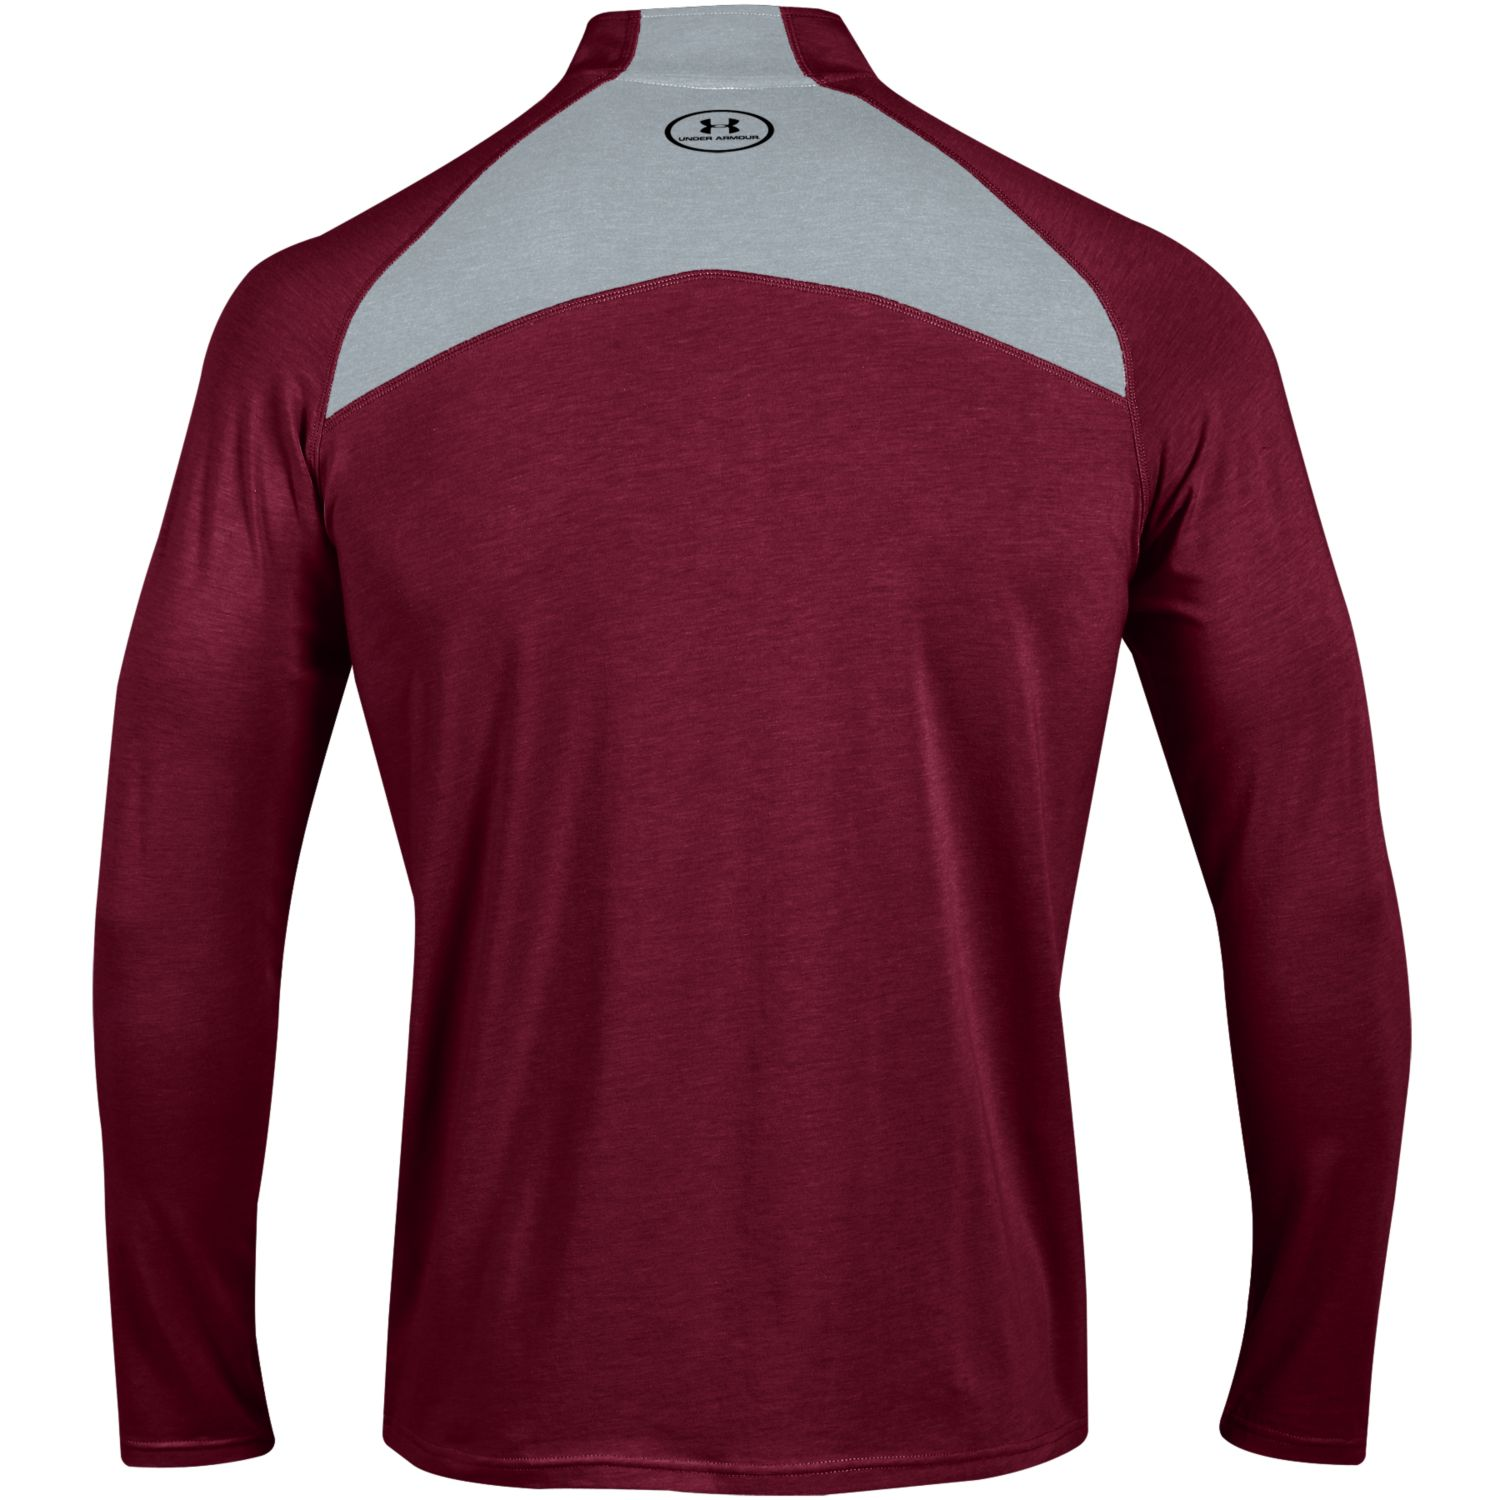 Alternative Image for the UNDER ARMOUR® SIU CHARGED COTTON 1/4 ZIP product